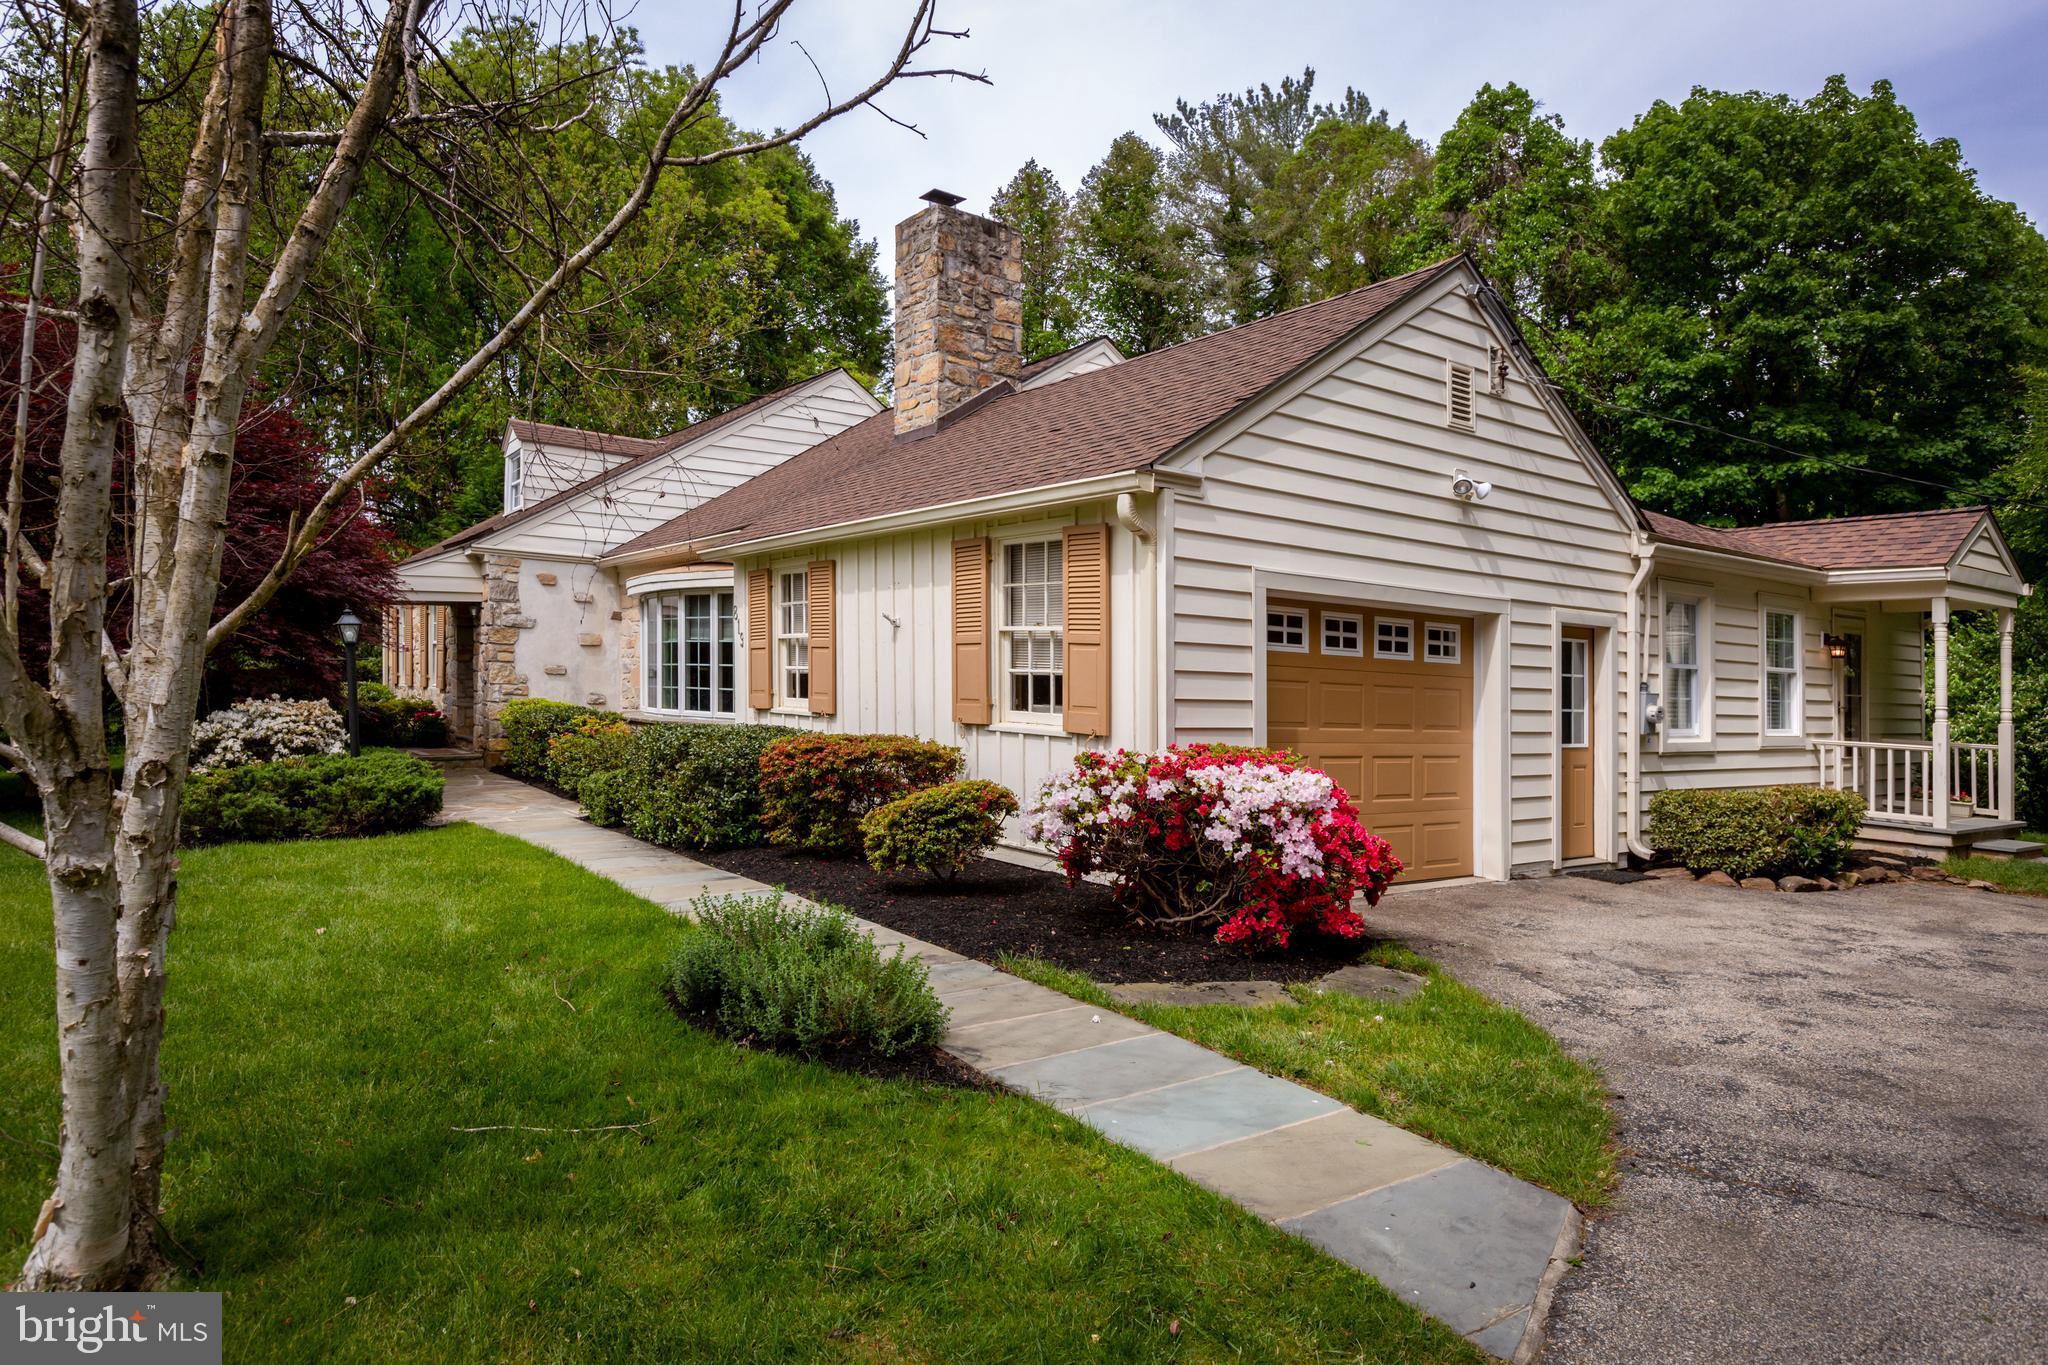 819 Wickfield Road, Wynnewood, PA 19096